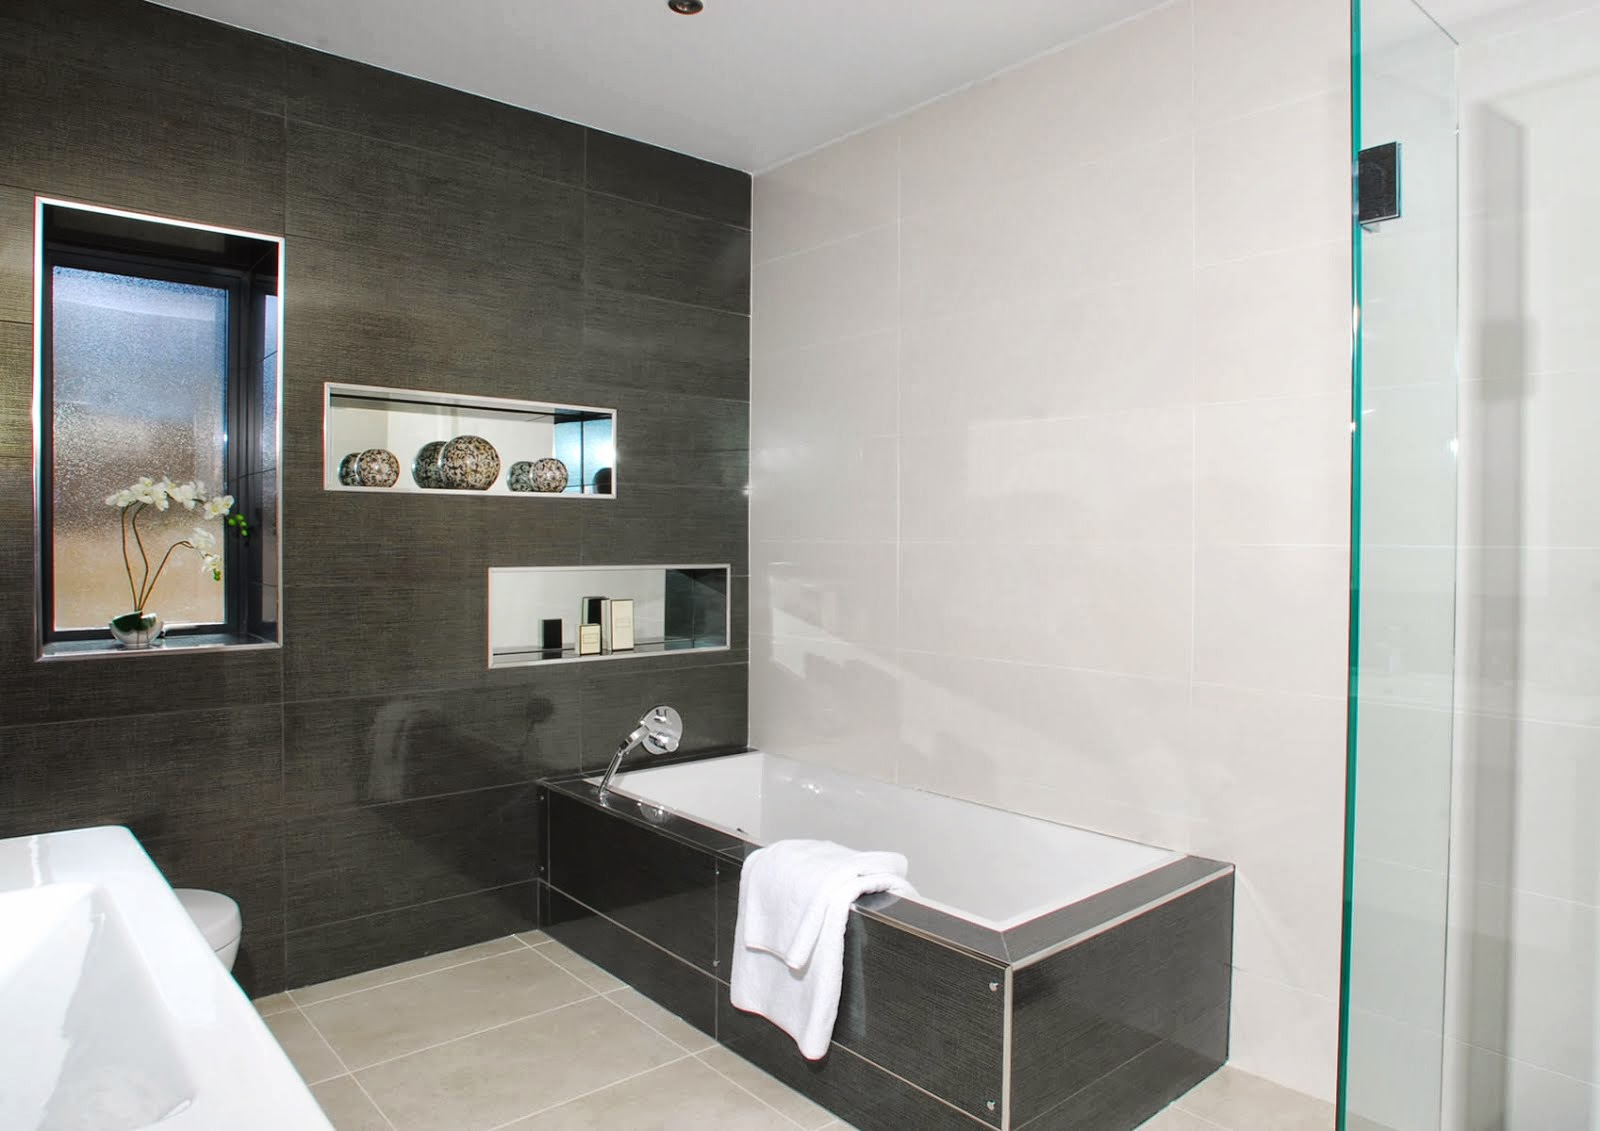 Bathroom design ideas uk Best bathroom design pictures